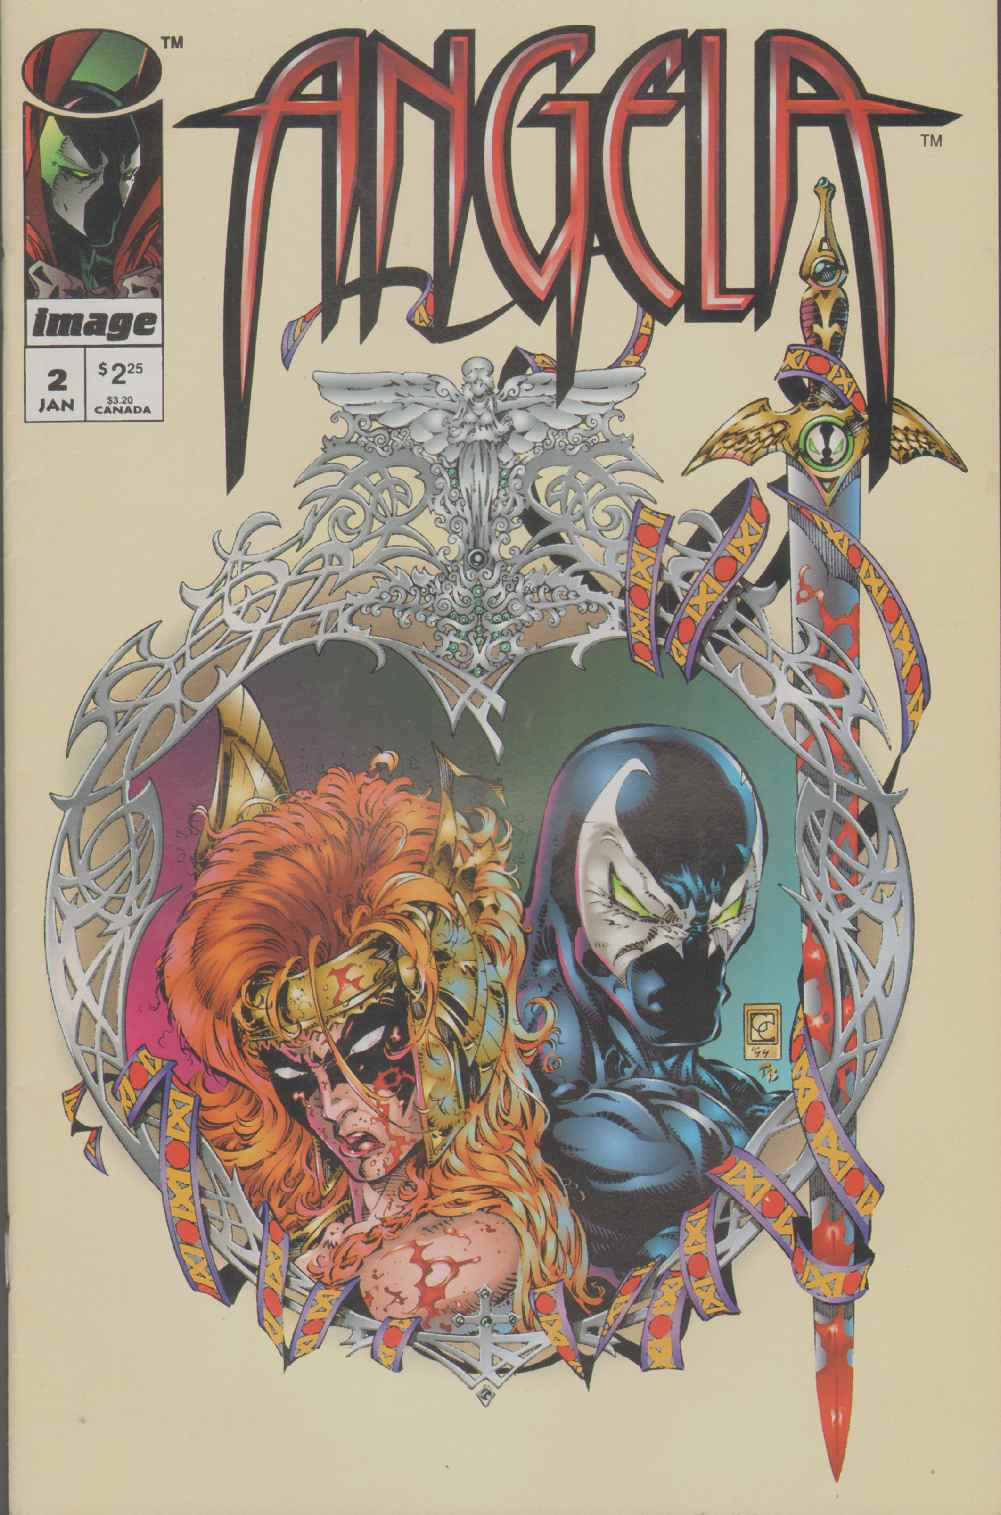 Image for ANGELA  (1995) #2 Does Not Include Pinup.